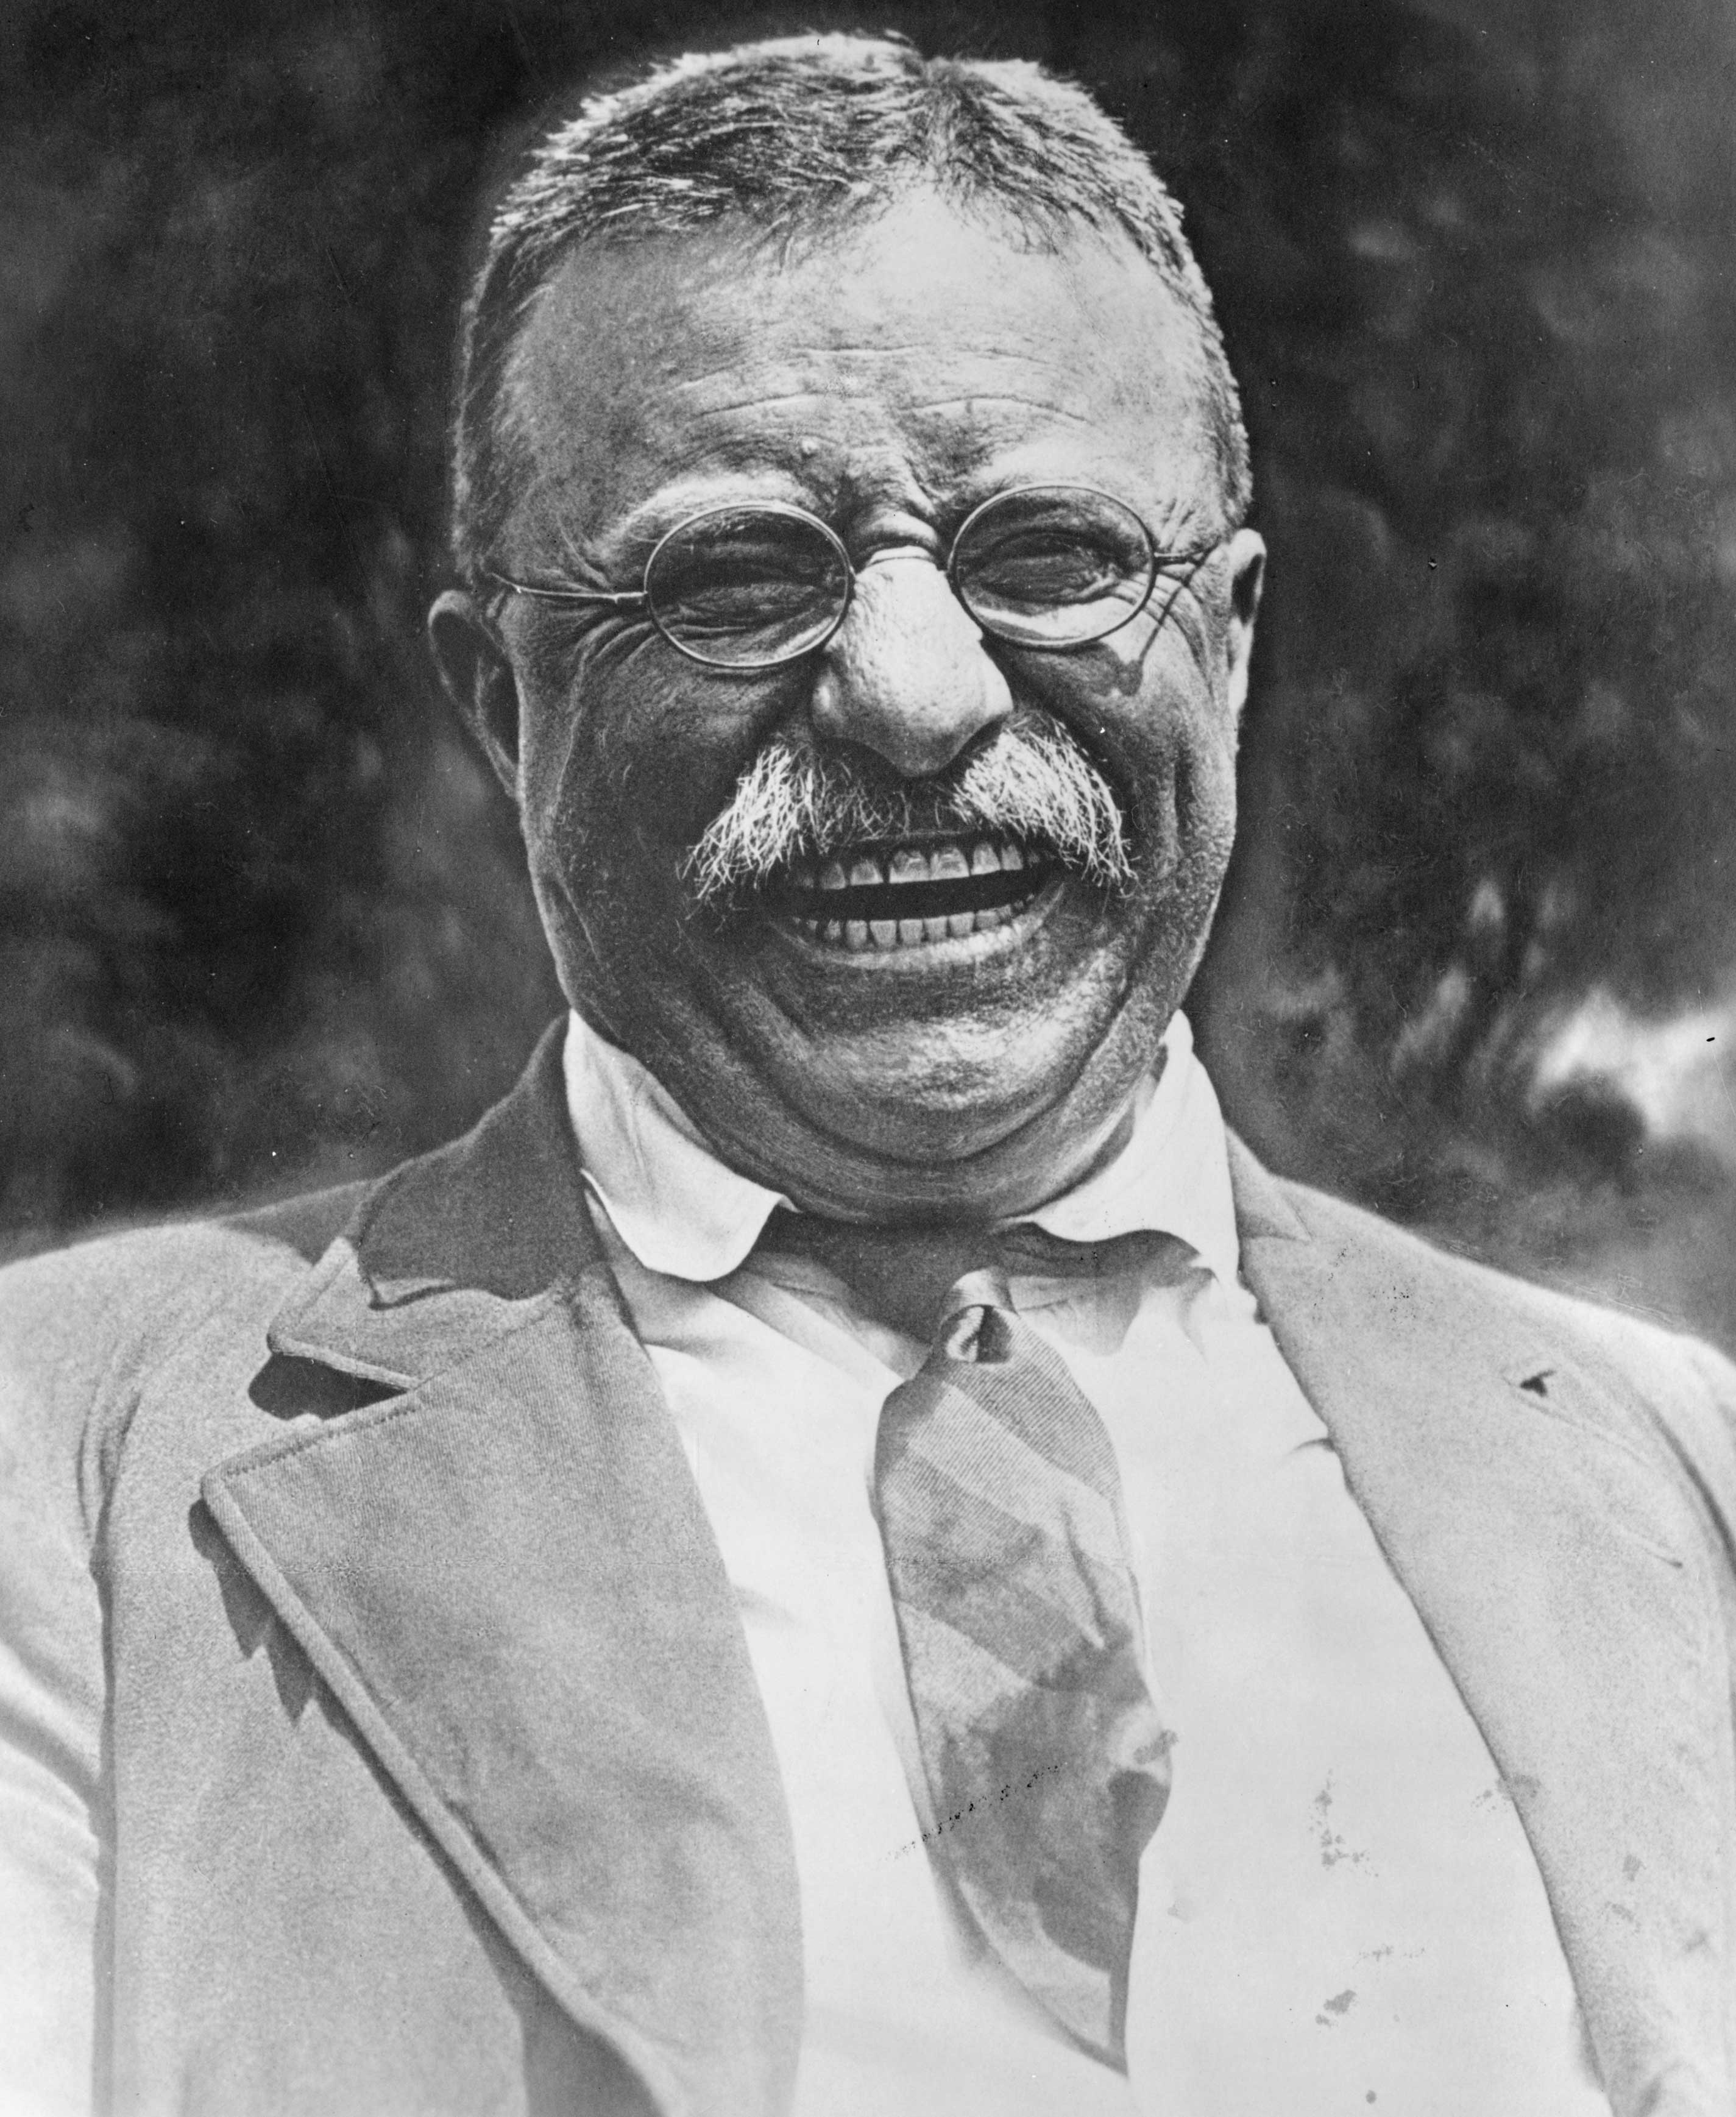 File:theodore Roosevelt Laughingg